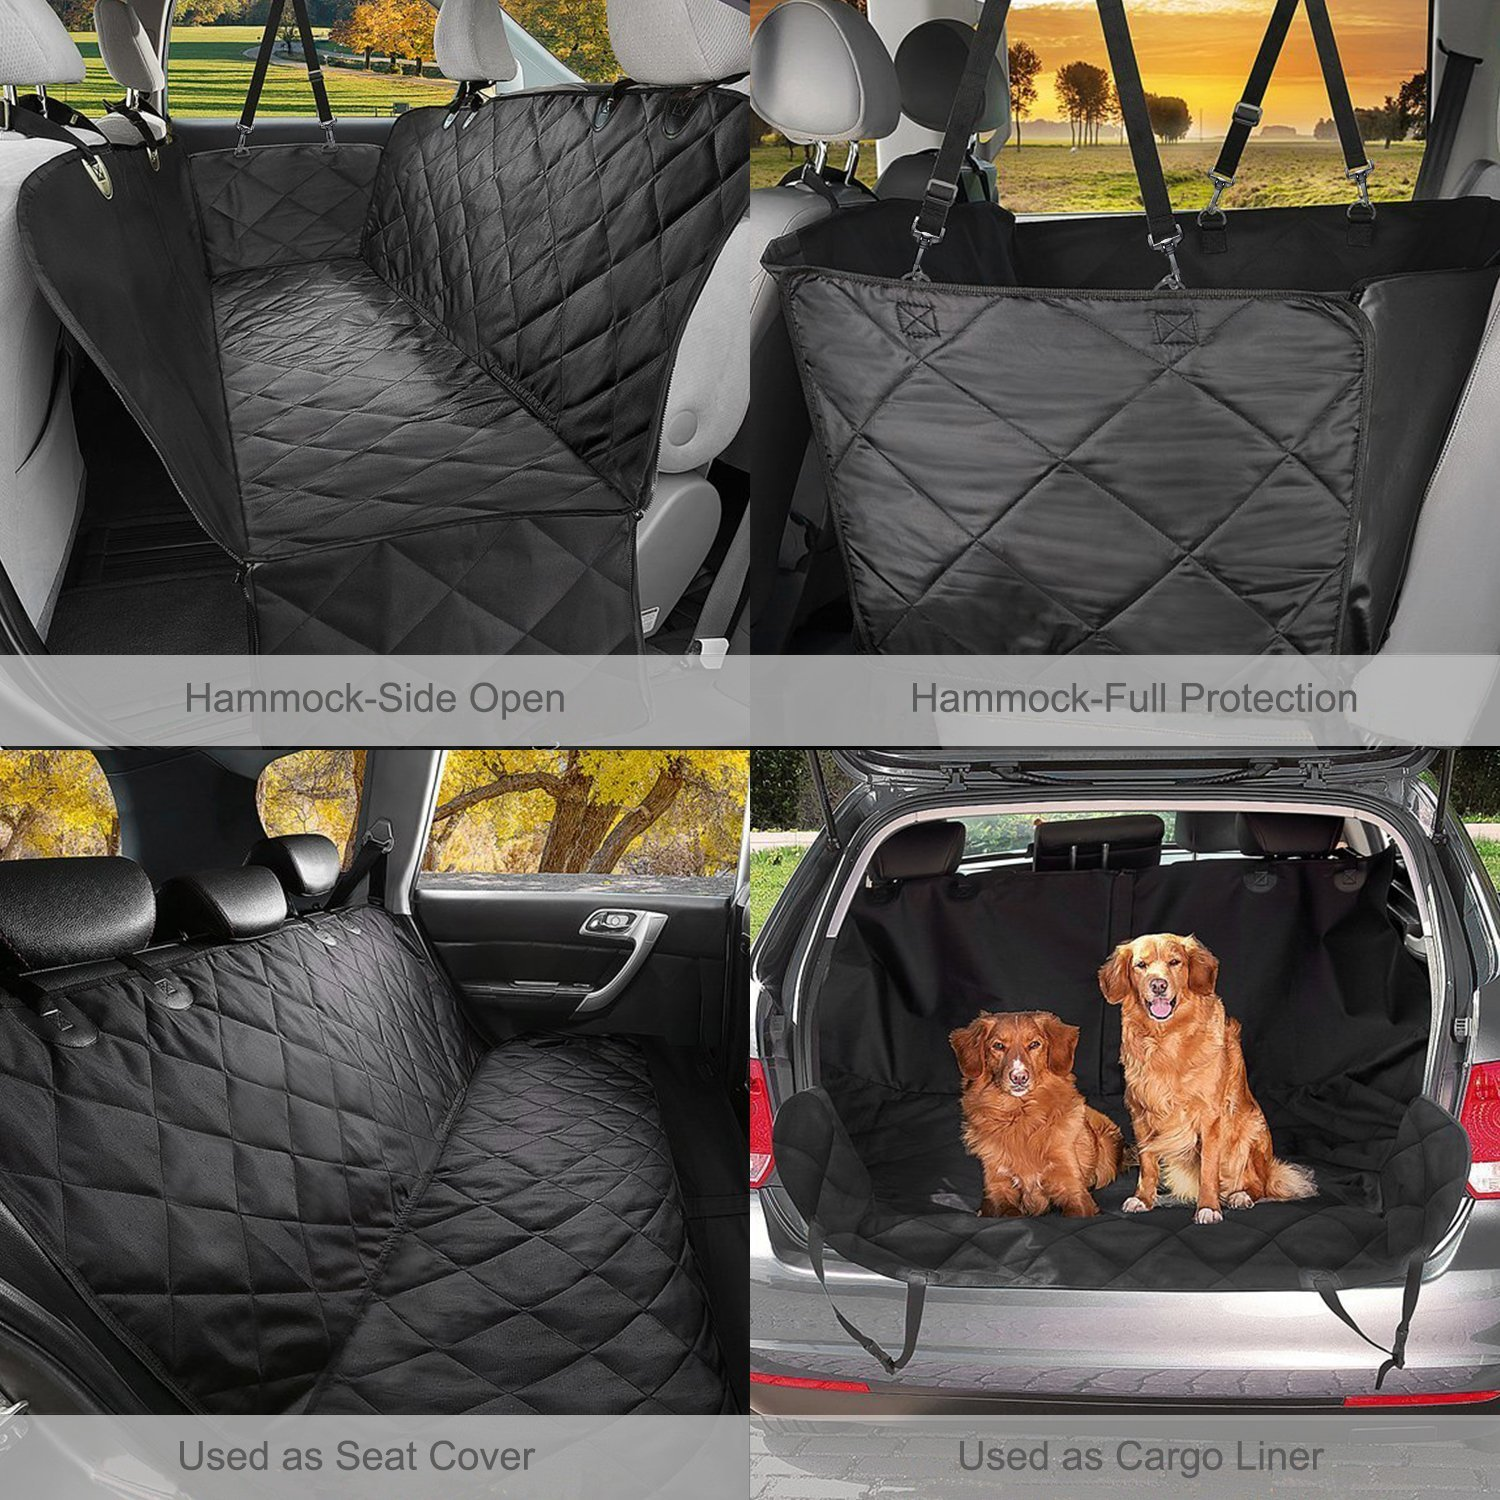 GELOO Bench Car Seat Cover Protector Waterproof, Heavy-Duty and Nonslip Pet Car Seat Cover for Dogs with Universal Size Fits for Cars, Trucks & SUVs by GELOO (Image #7)